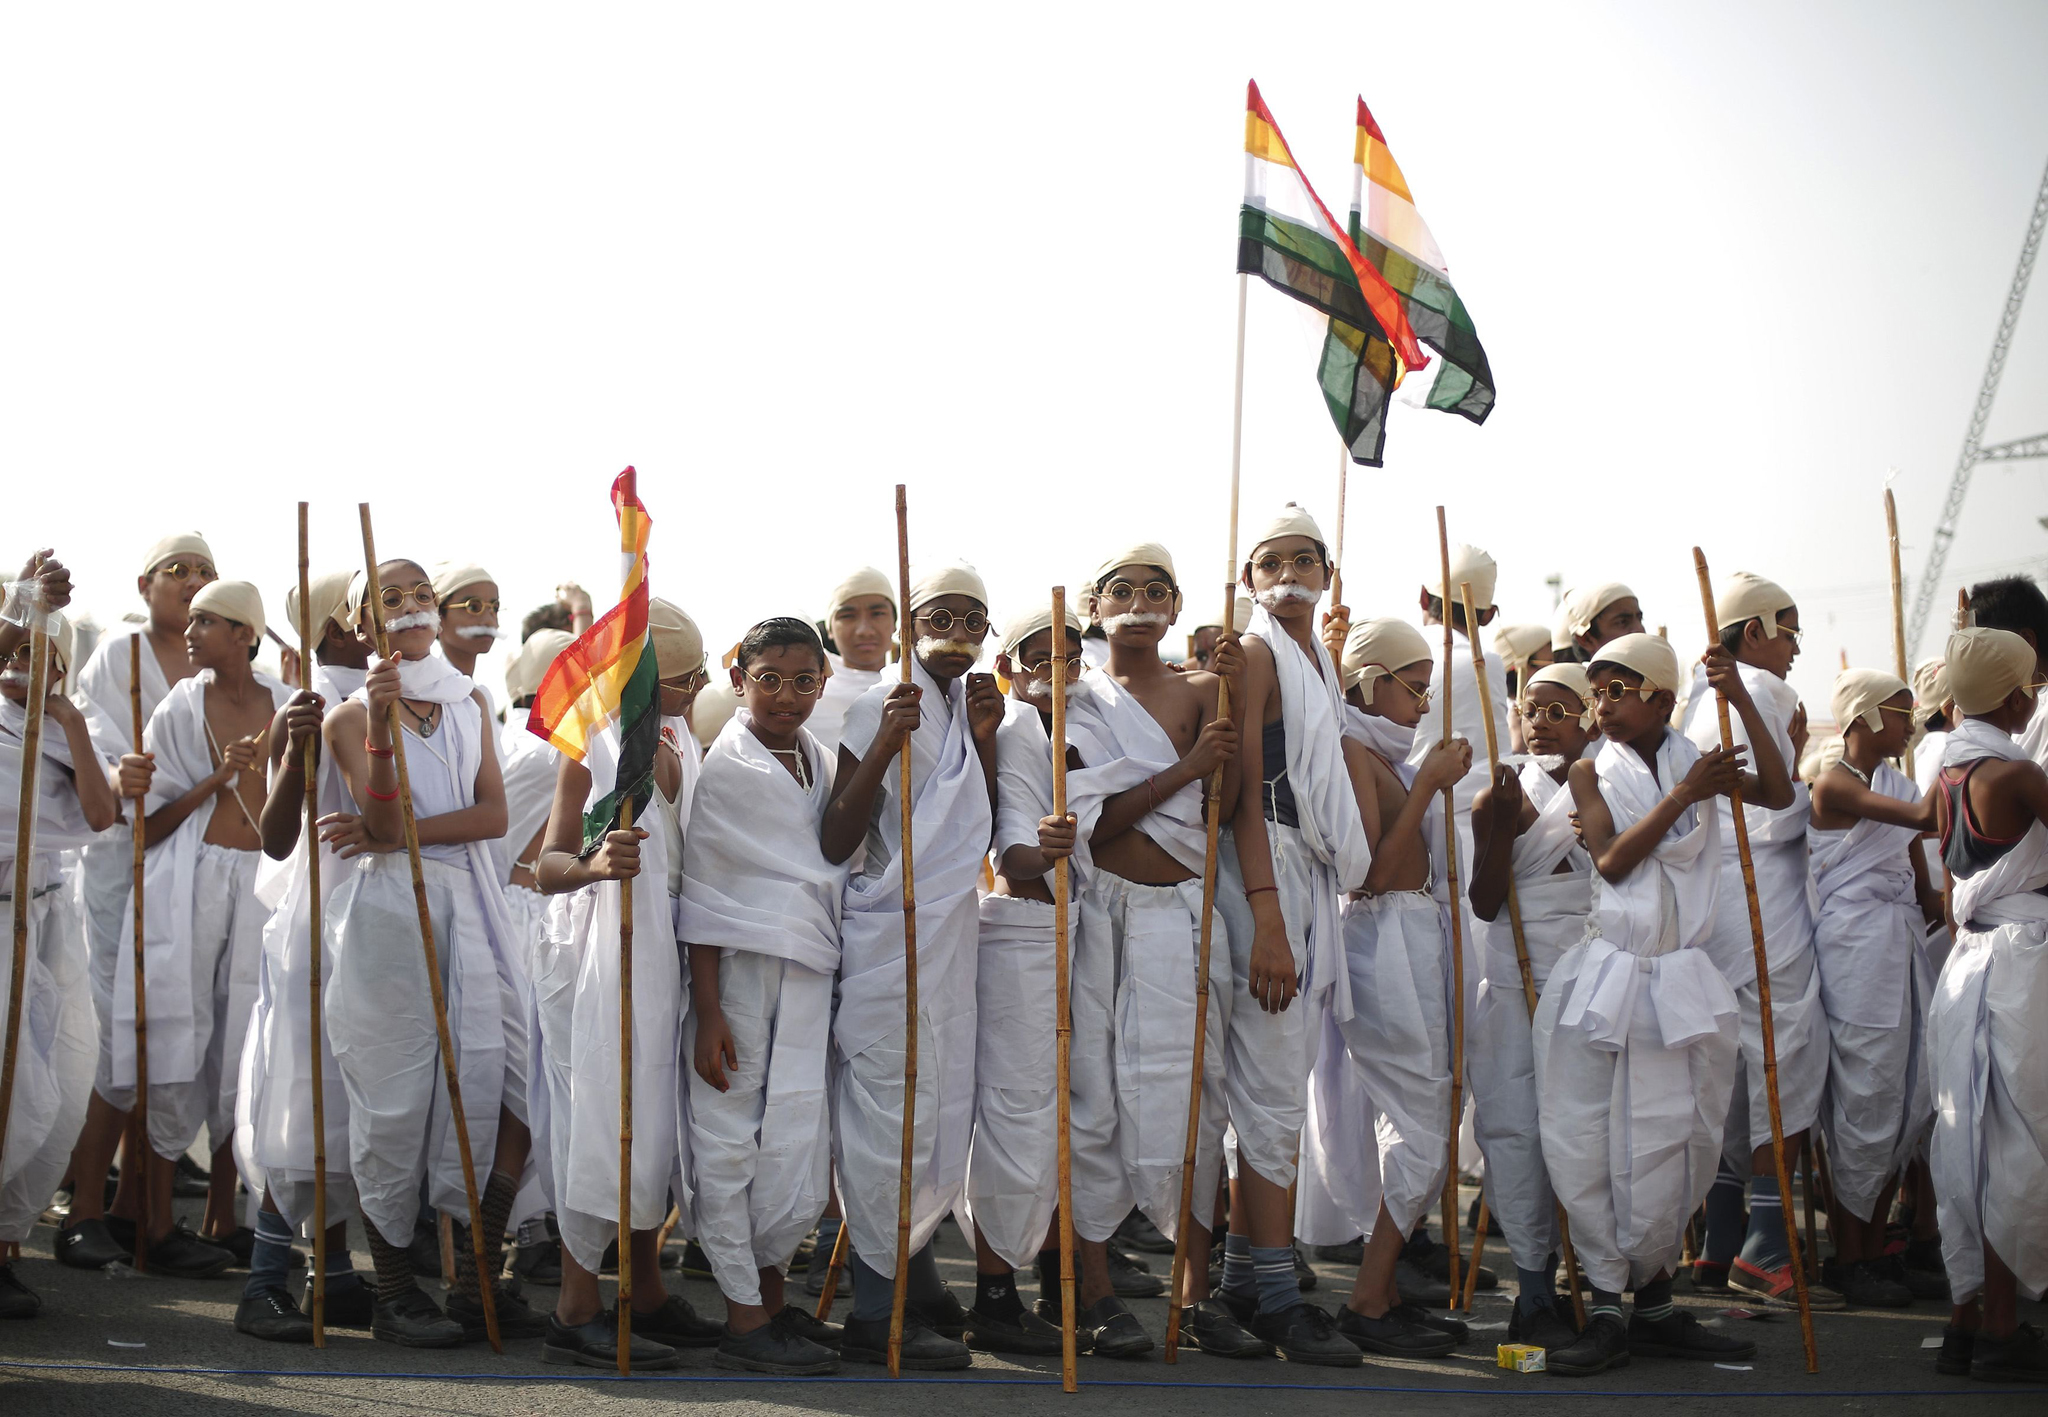 School children dressed as Mahatma Gandhi take part in a march to mark the 145th birth anniversary of Gandhi in New Delhi